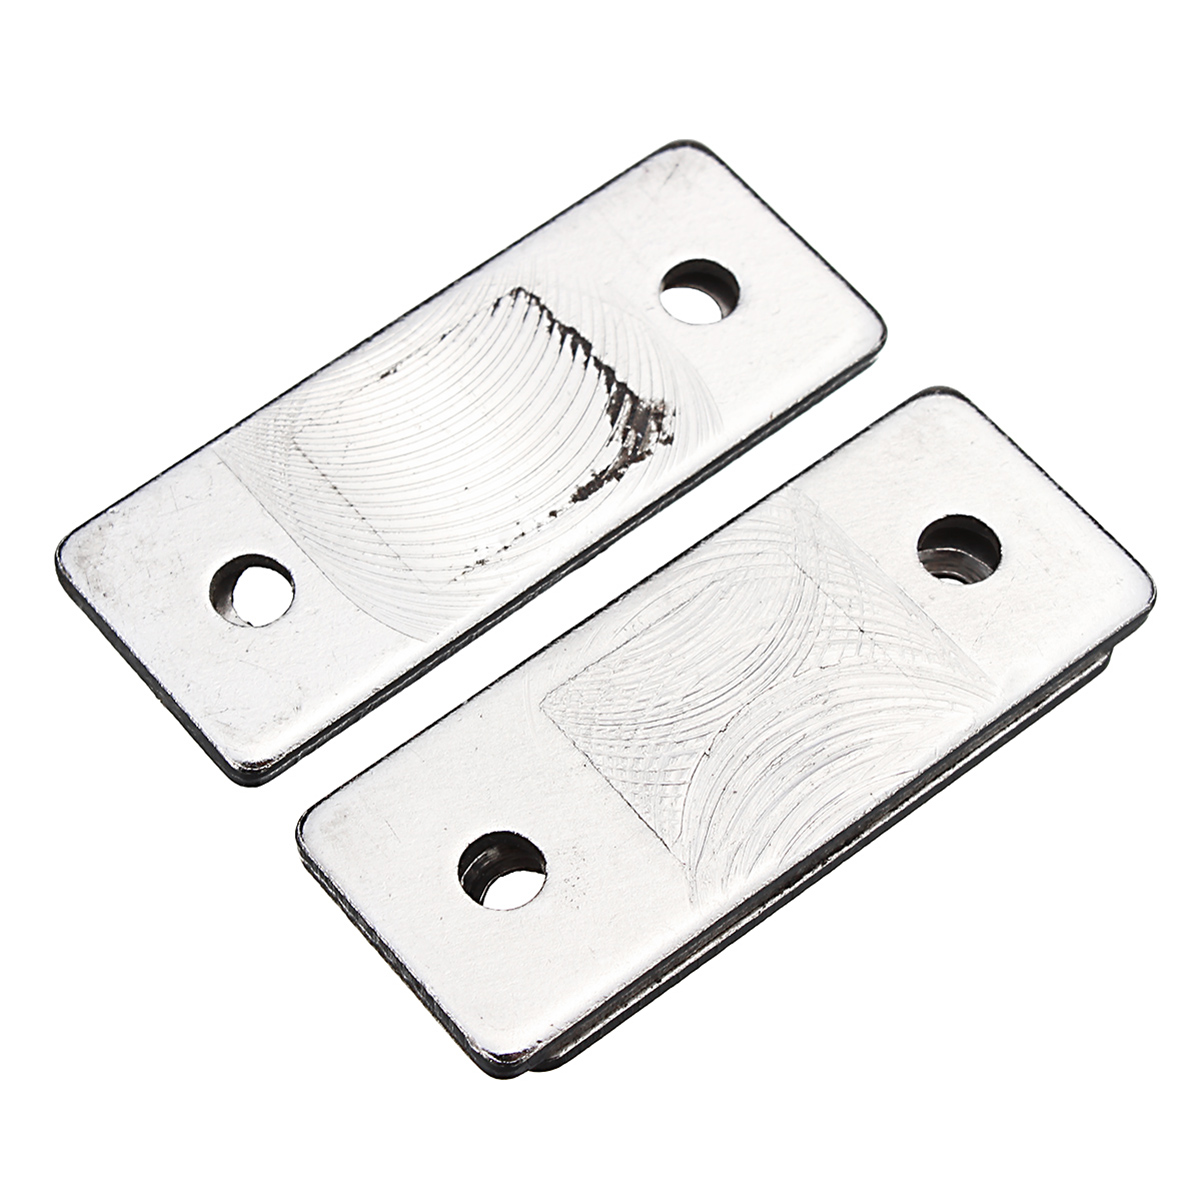 2pcs Magnetic Catch Latch Ultra Thin For Glass Door